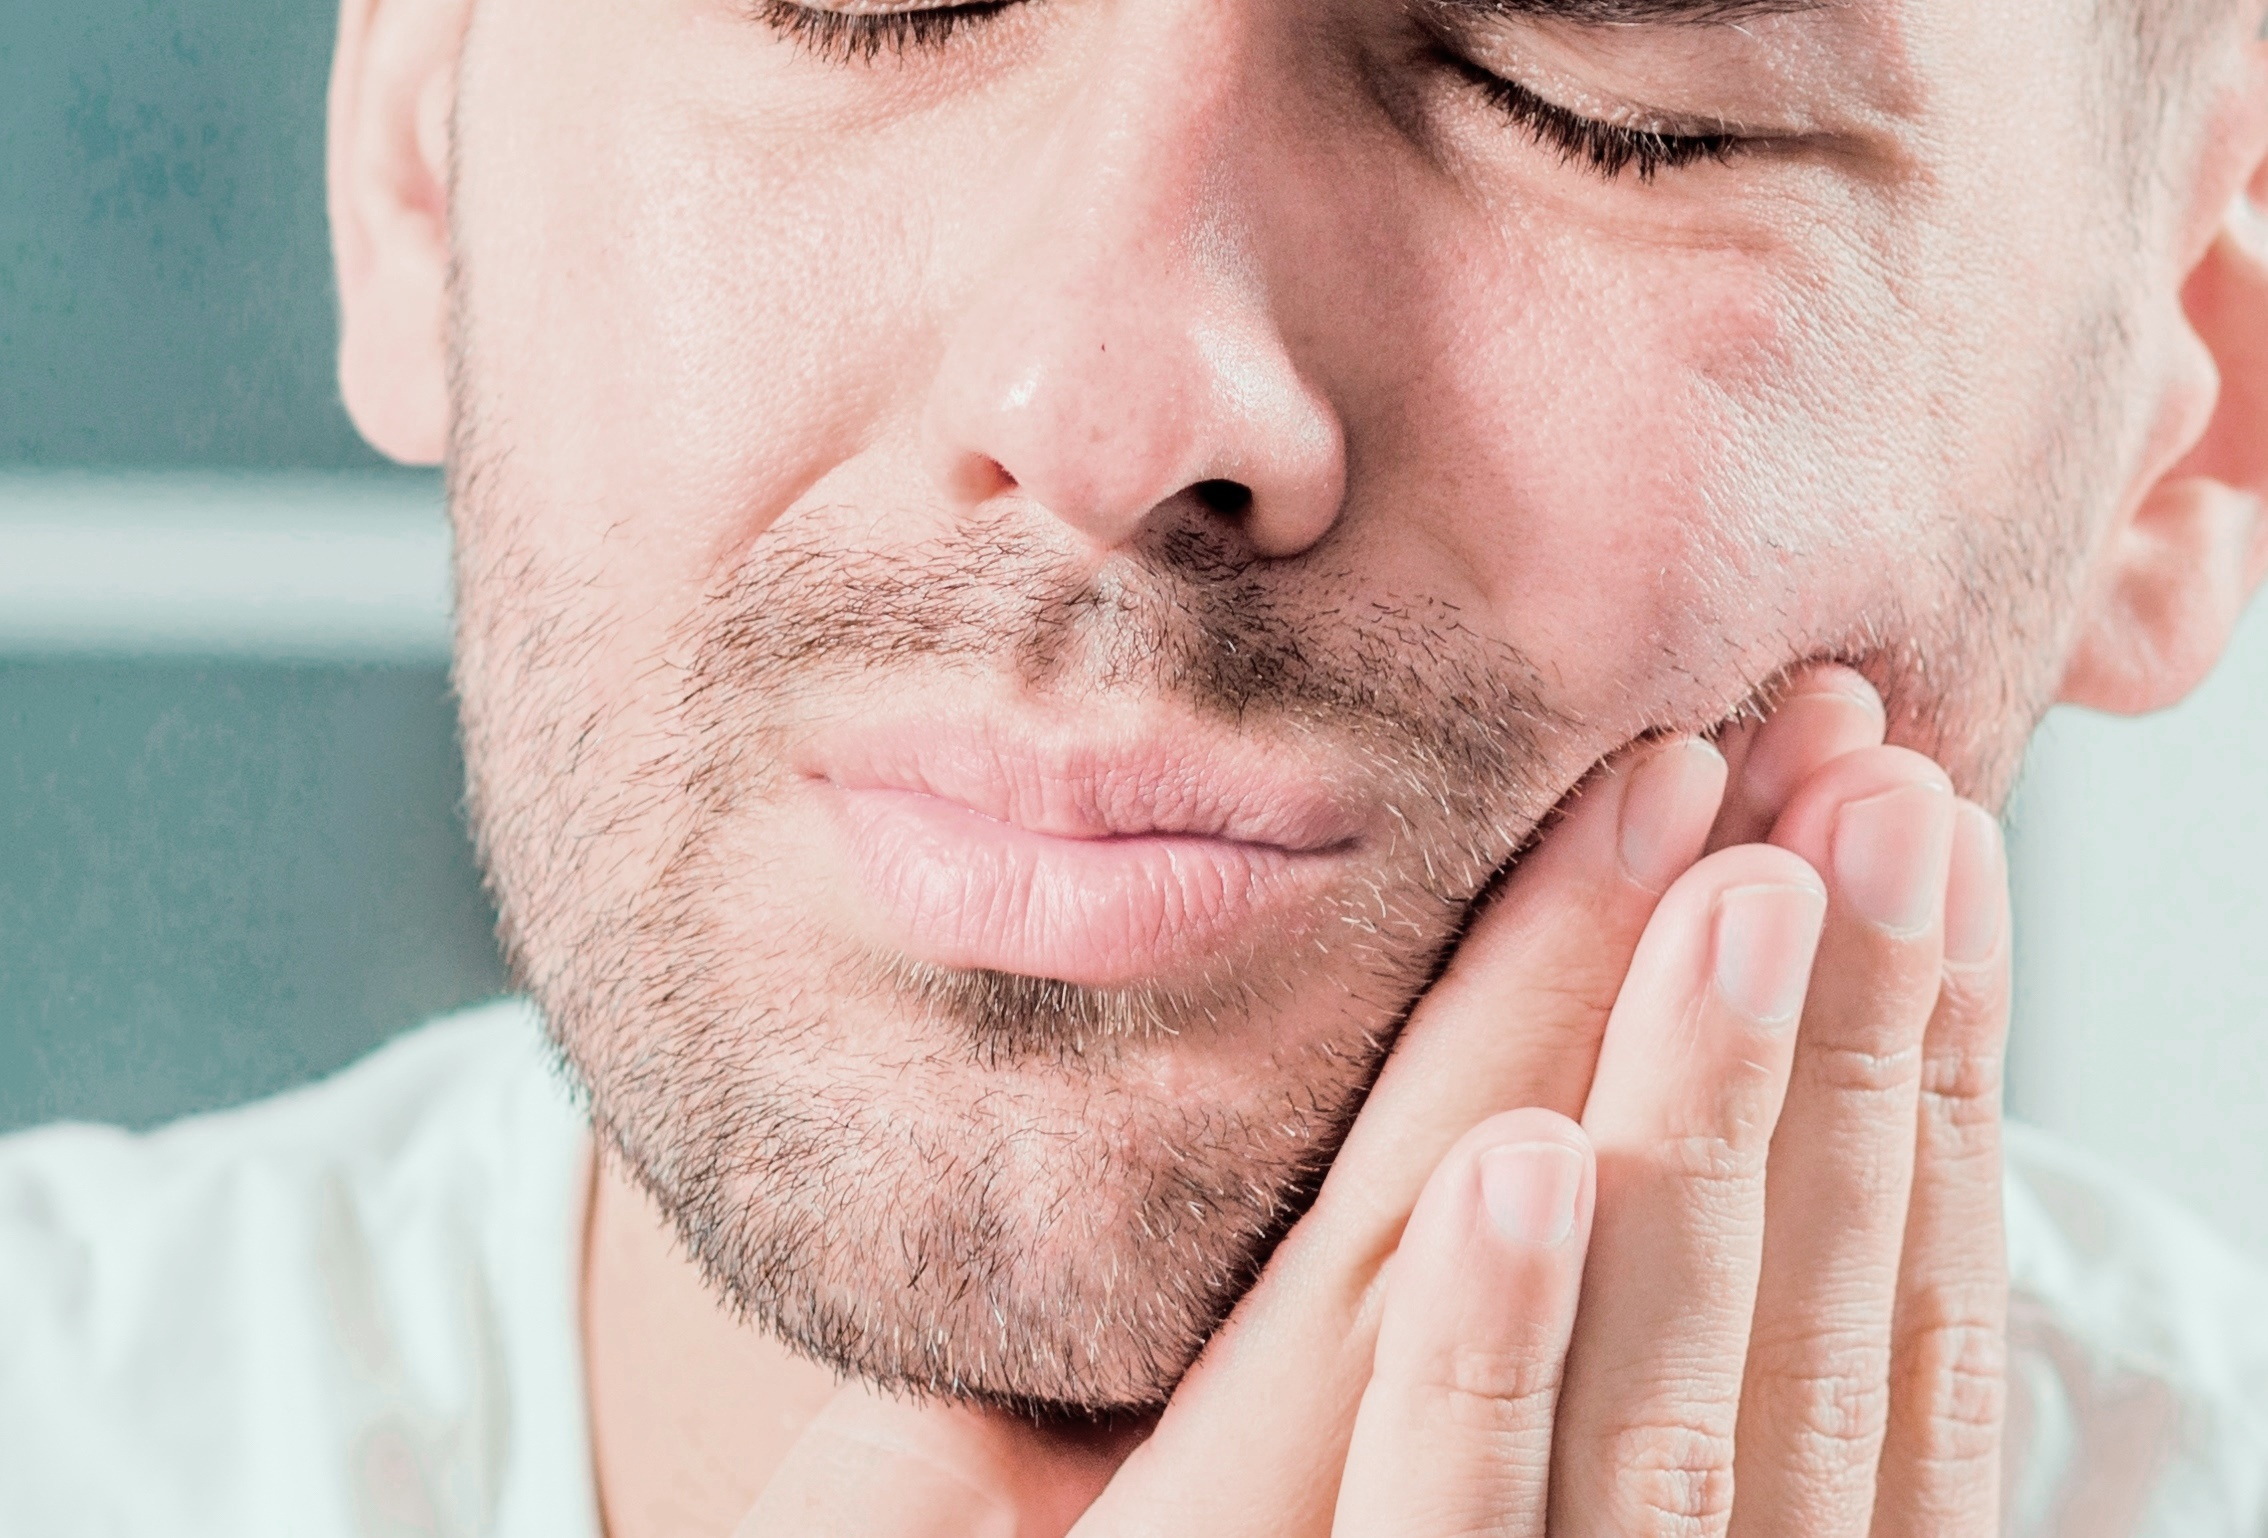 Two Medical Conditions that Can Make TMJ Worse